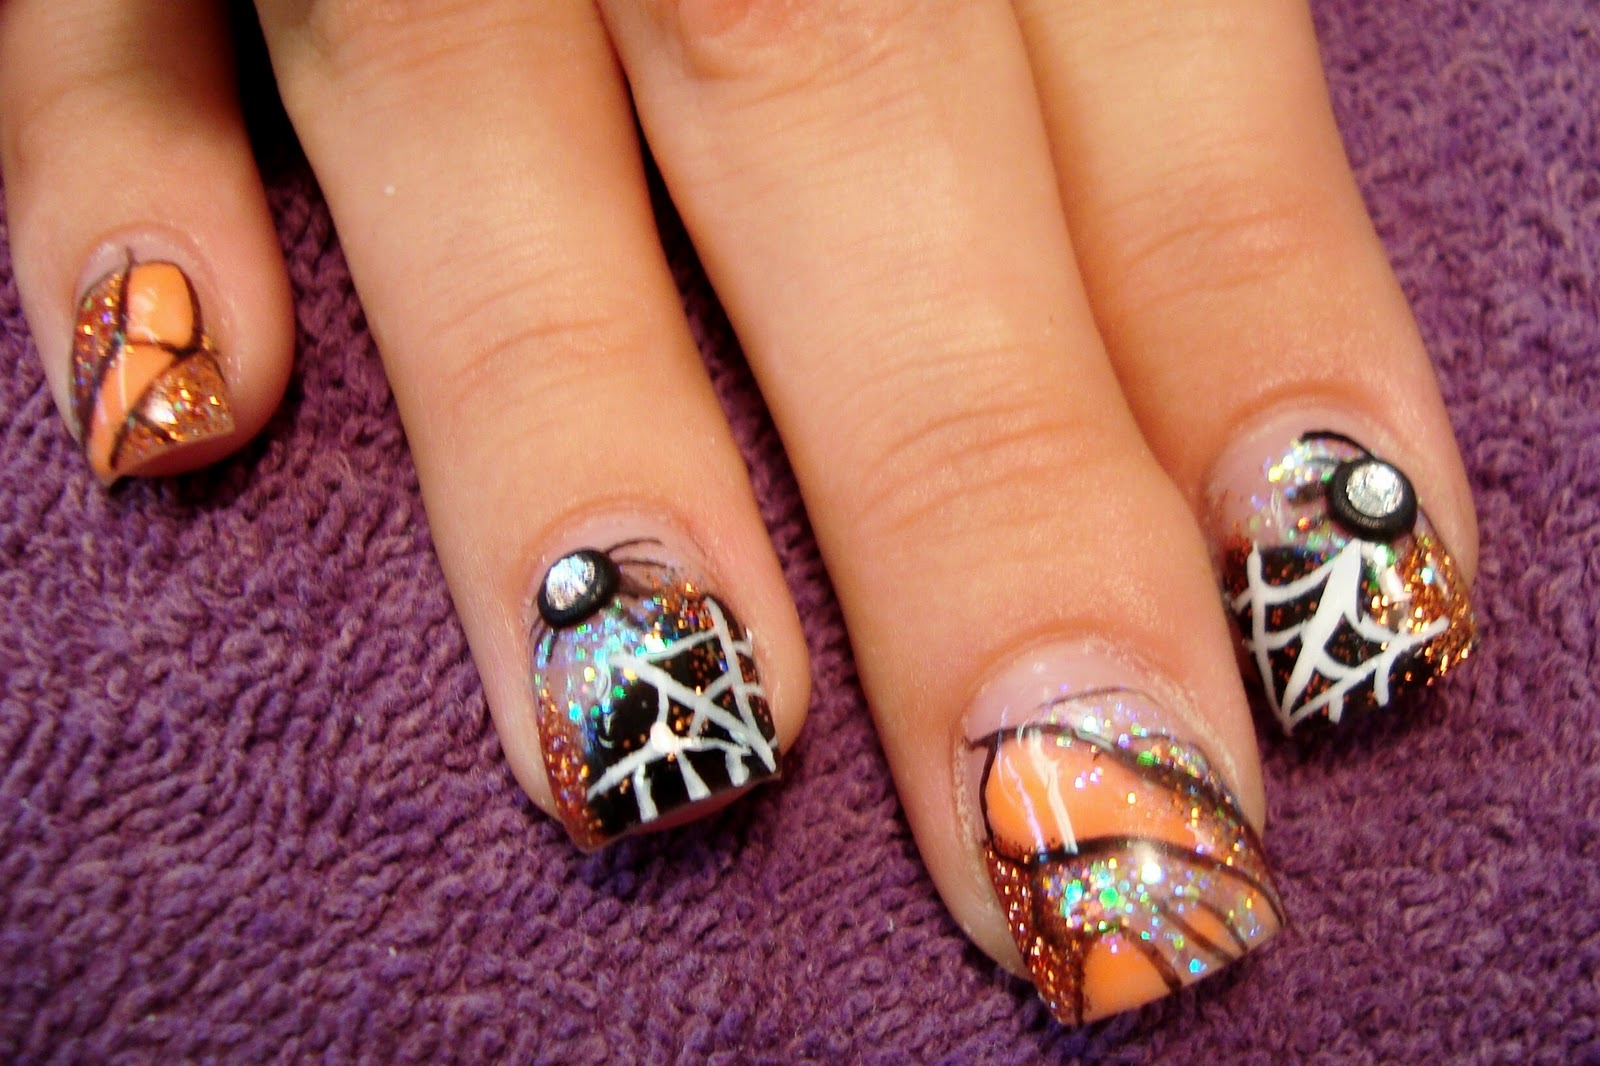 The Purple Pinkie Nail Salon: We're Ready For Halloween!